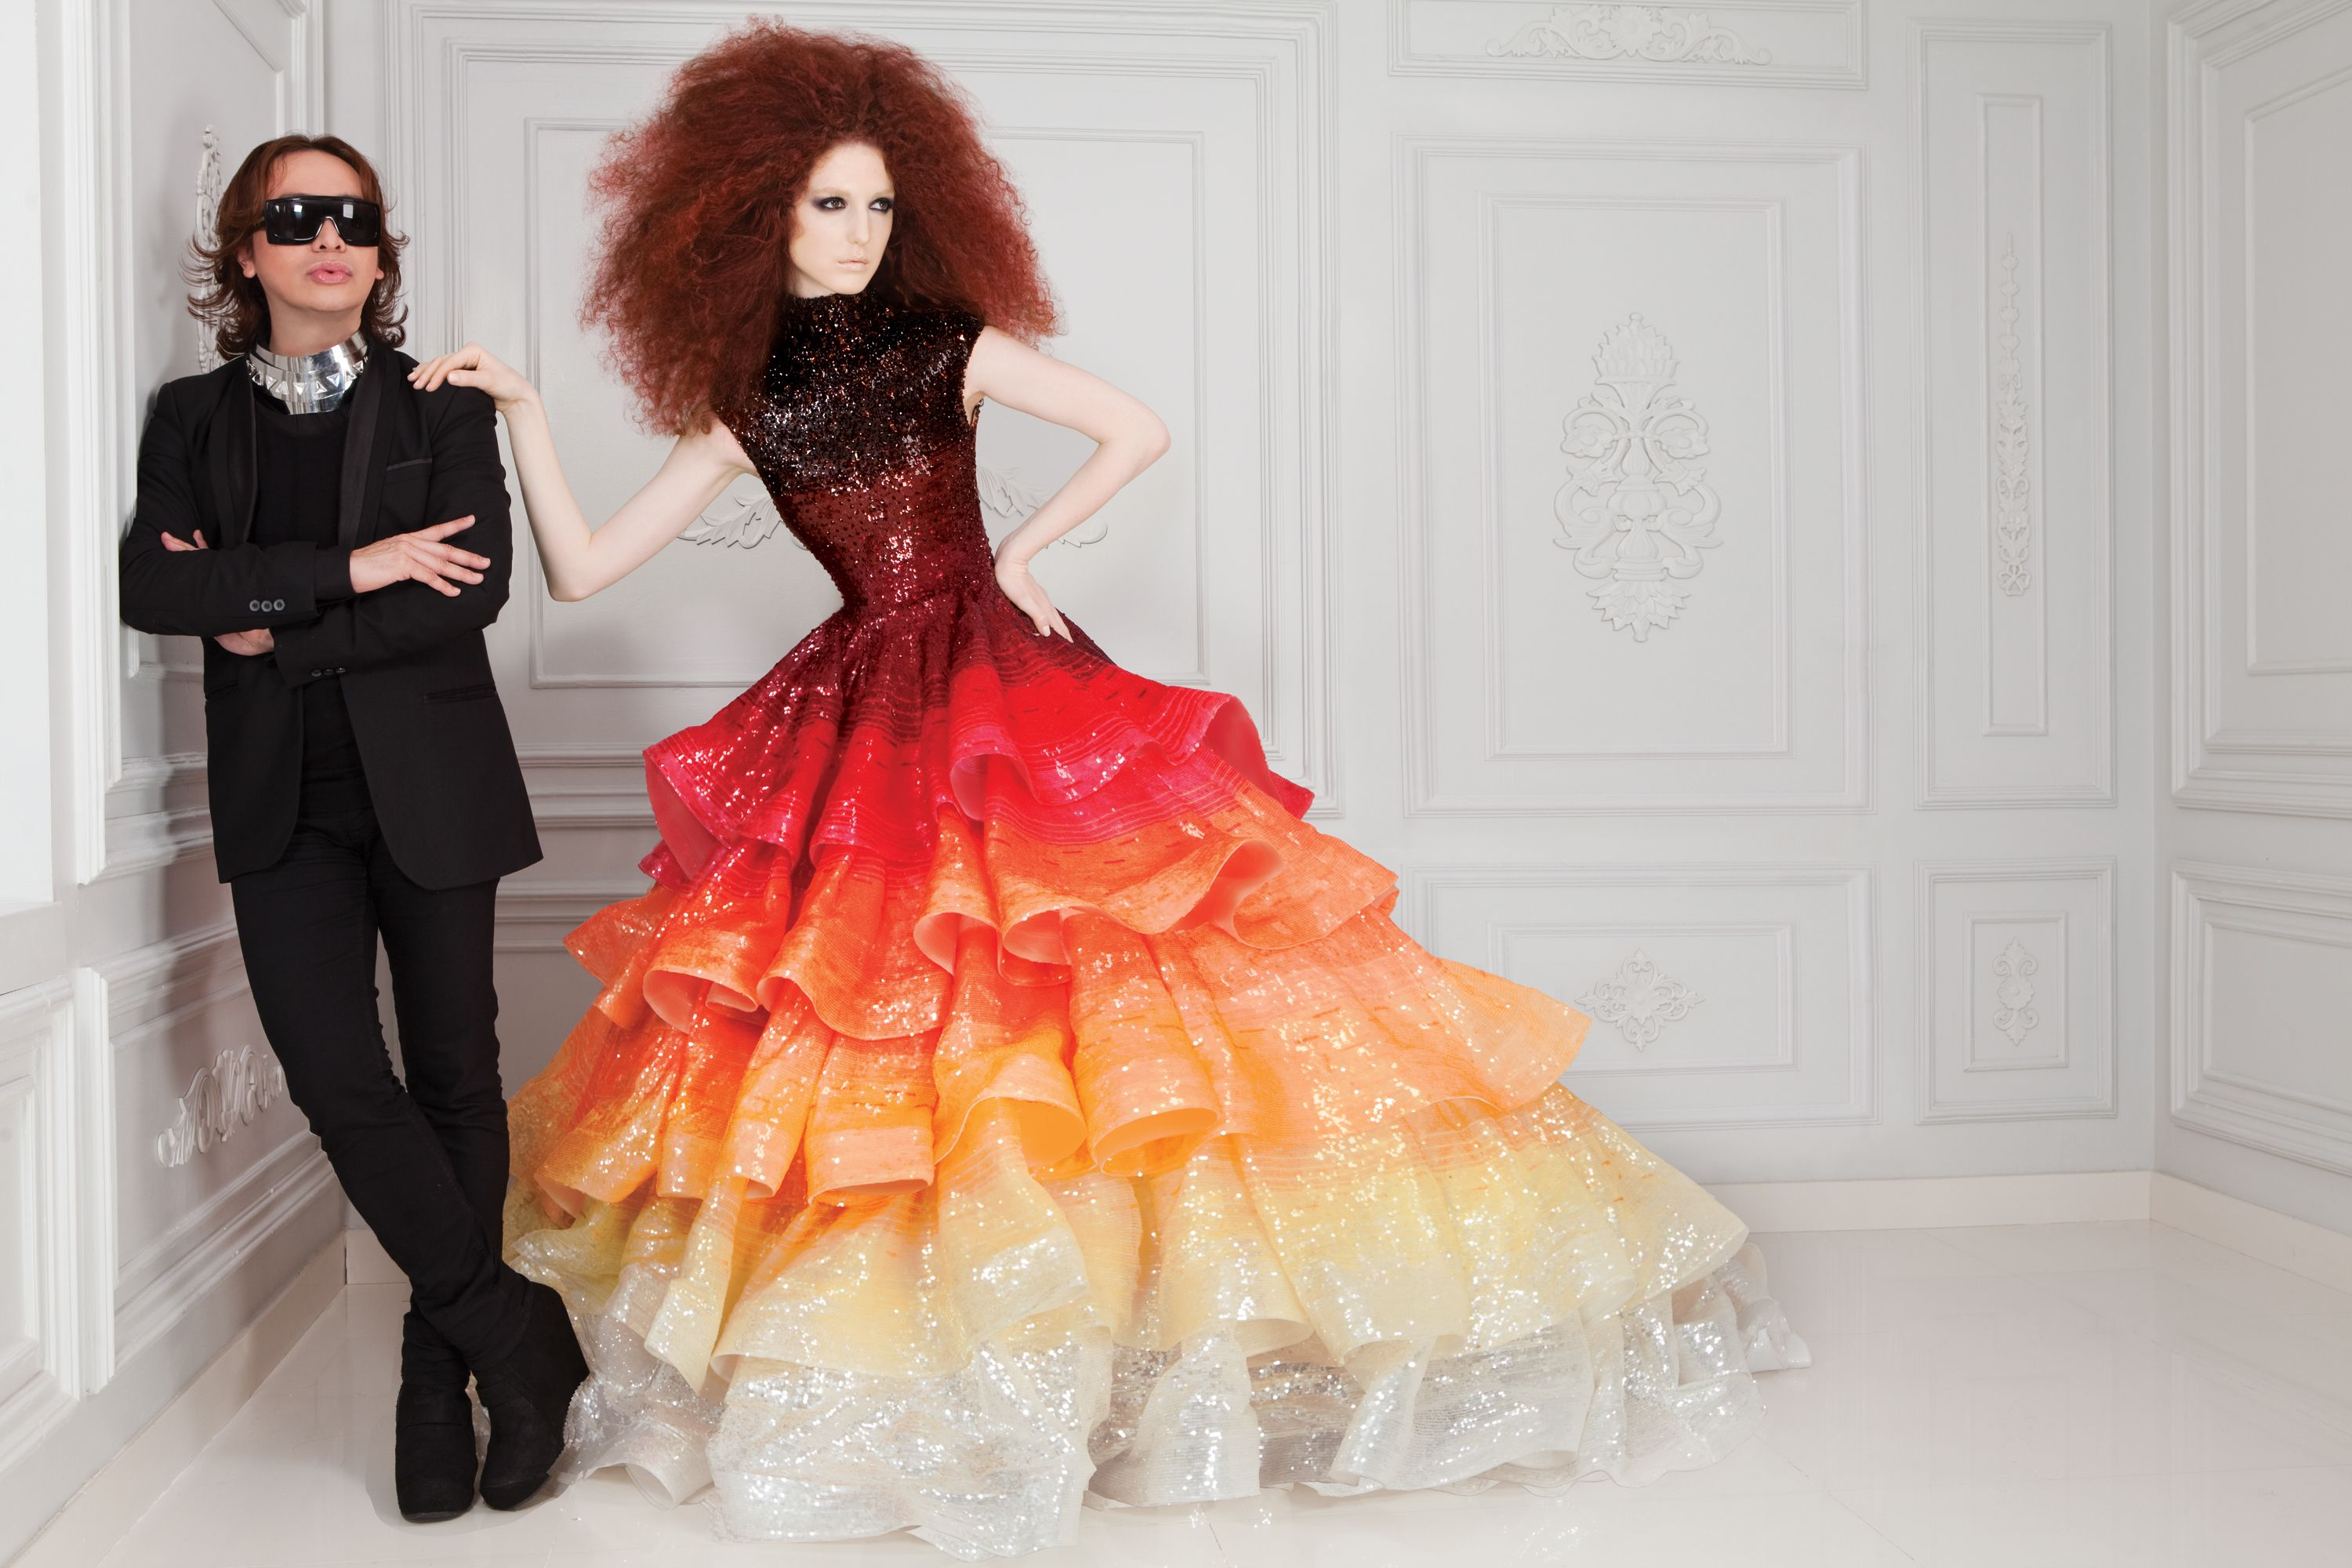 Dubai Based Filipino Designer Michael Cinco Is Best Known For His Fabulous Couture Gowns In The Middle East Cinco Achieved Luxury Status Through His Innate Cre